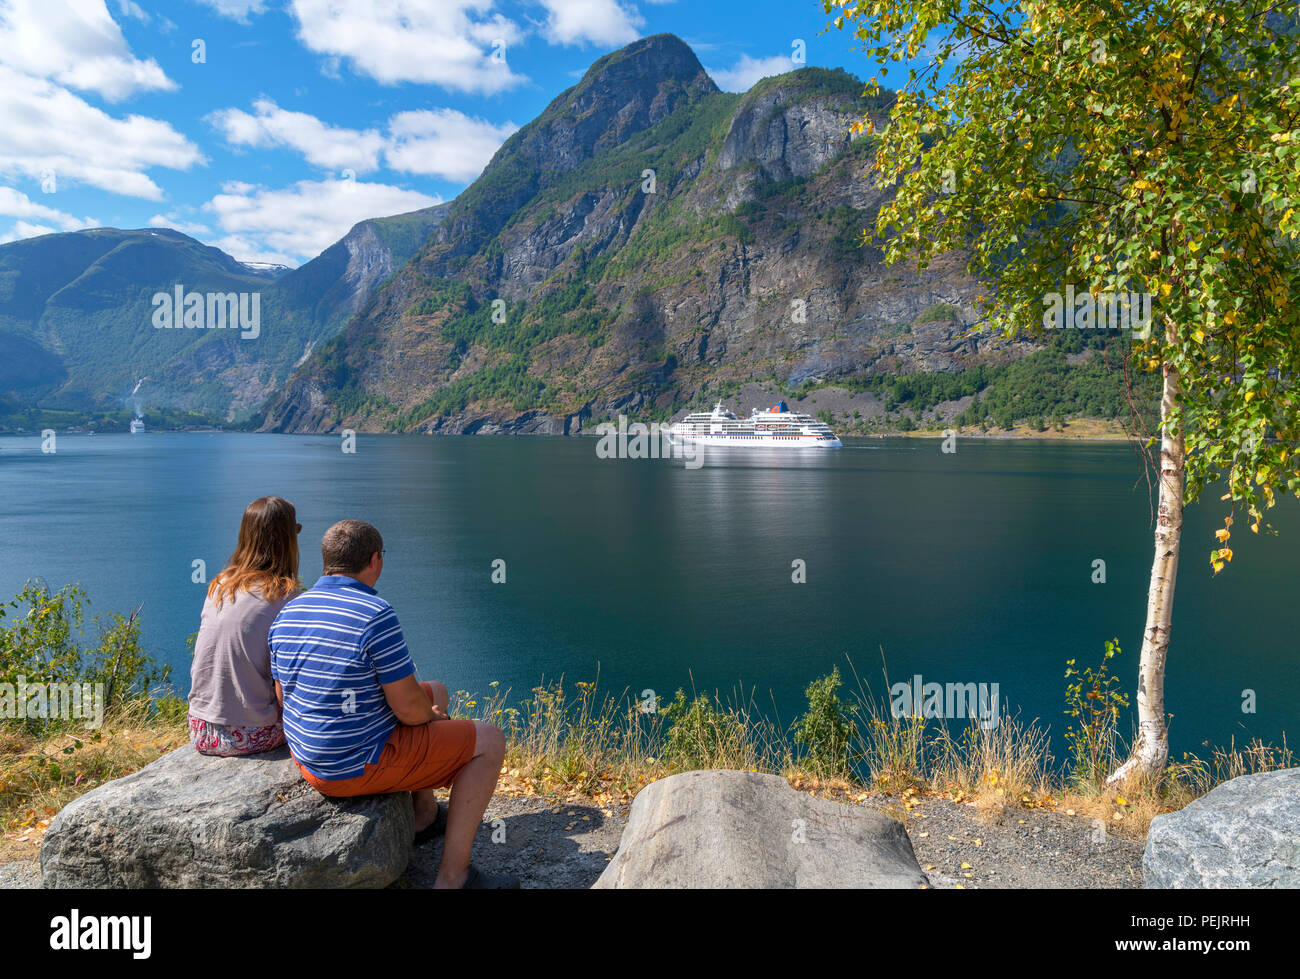 Couple watching a cruise ship sailing into Flåm, Aurlandsfjord, Sognefjord, Sogn og Fjordane, Norway - Stock Image